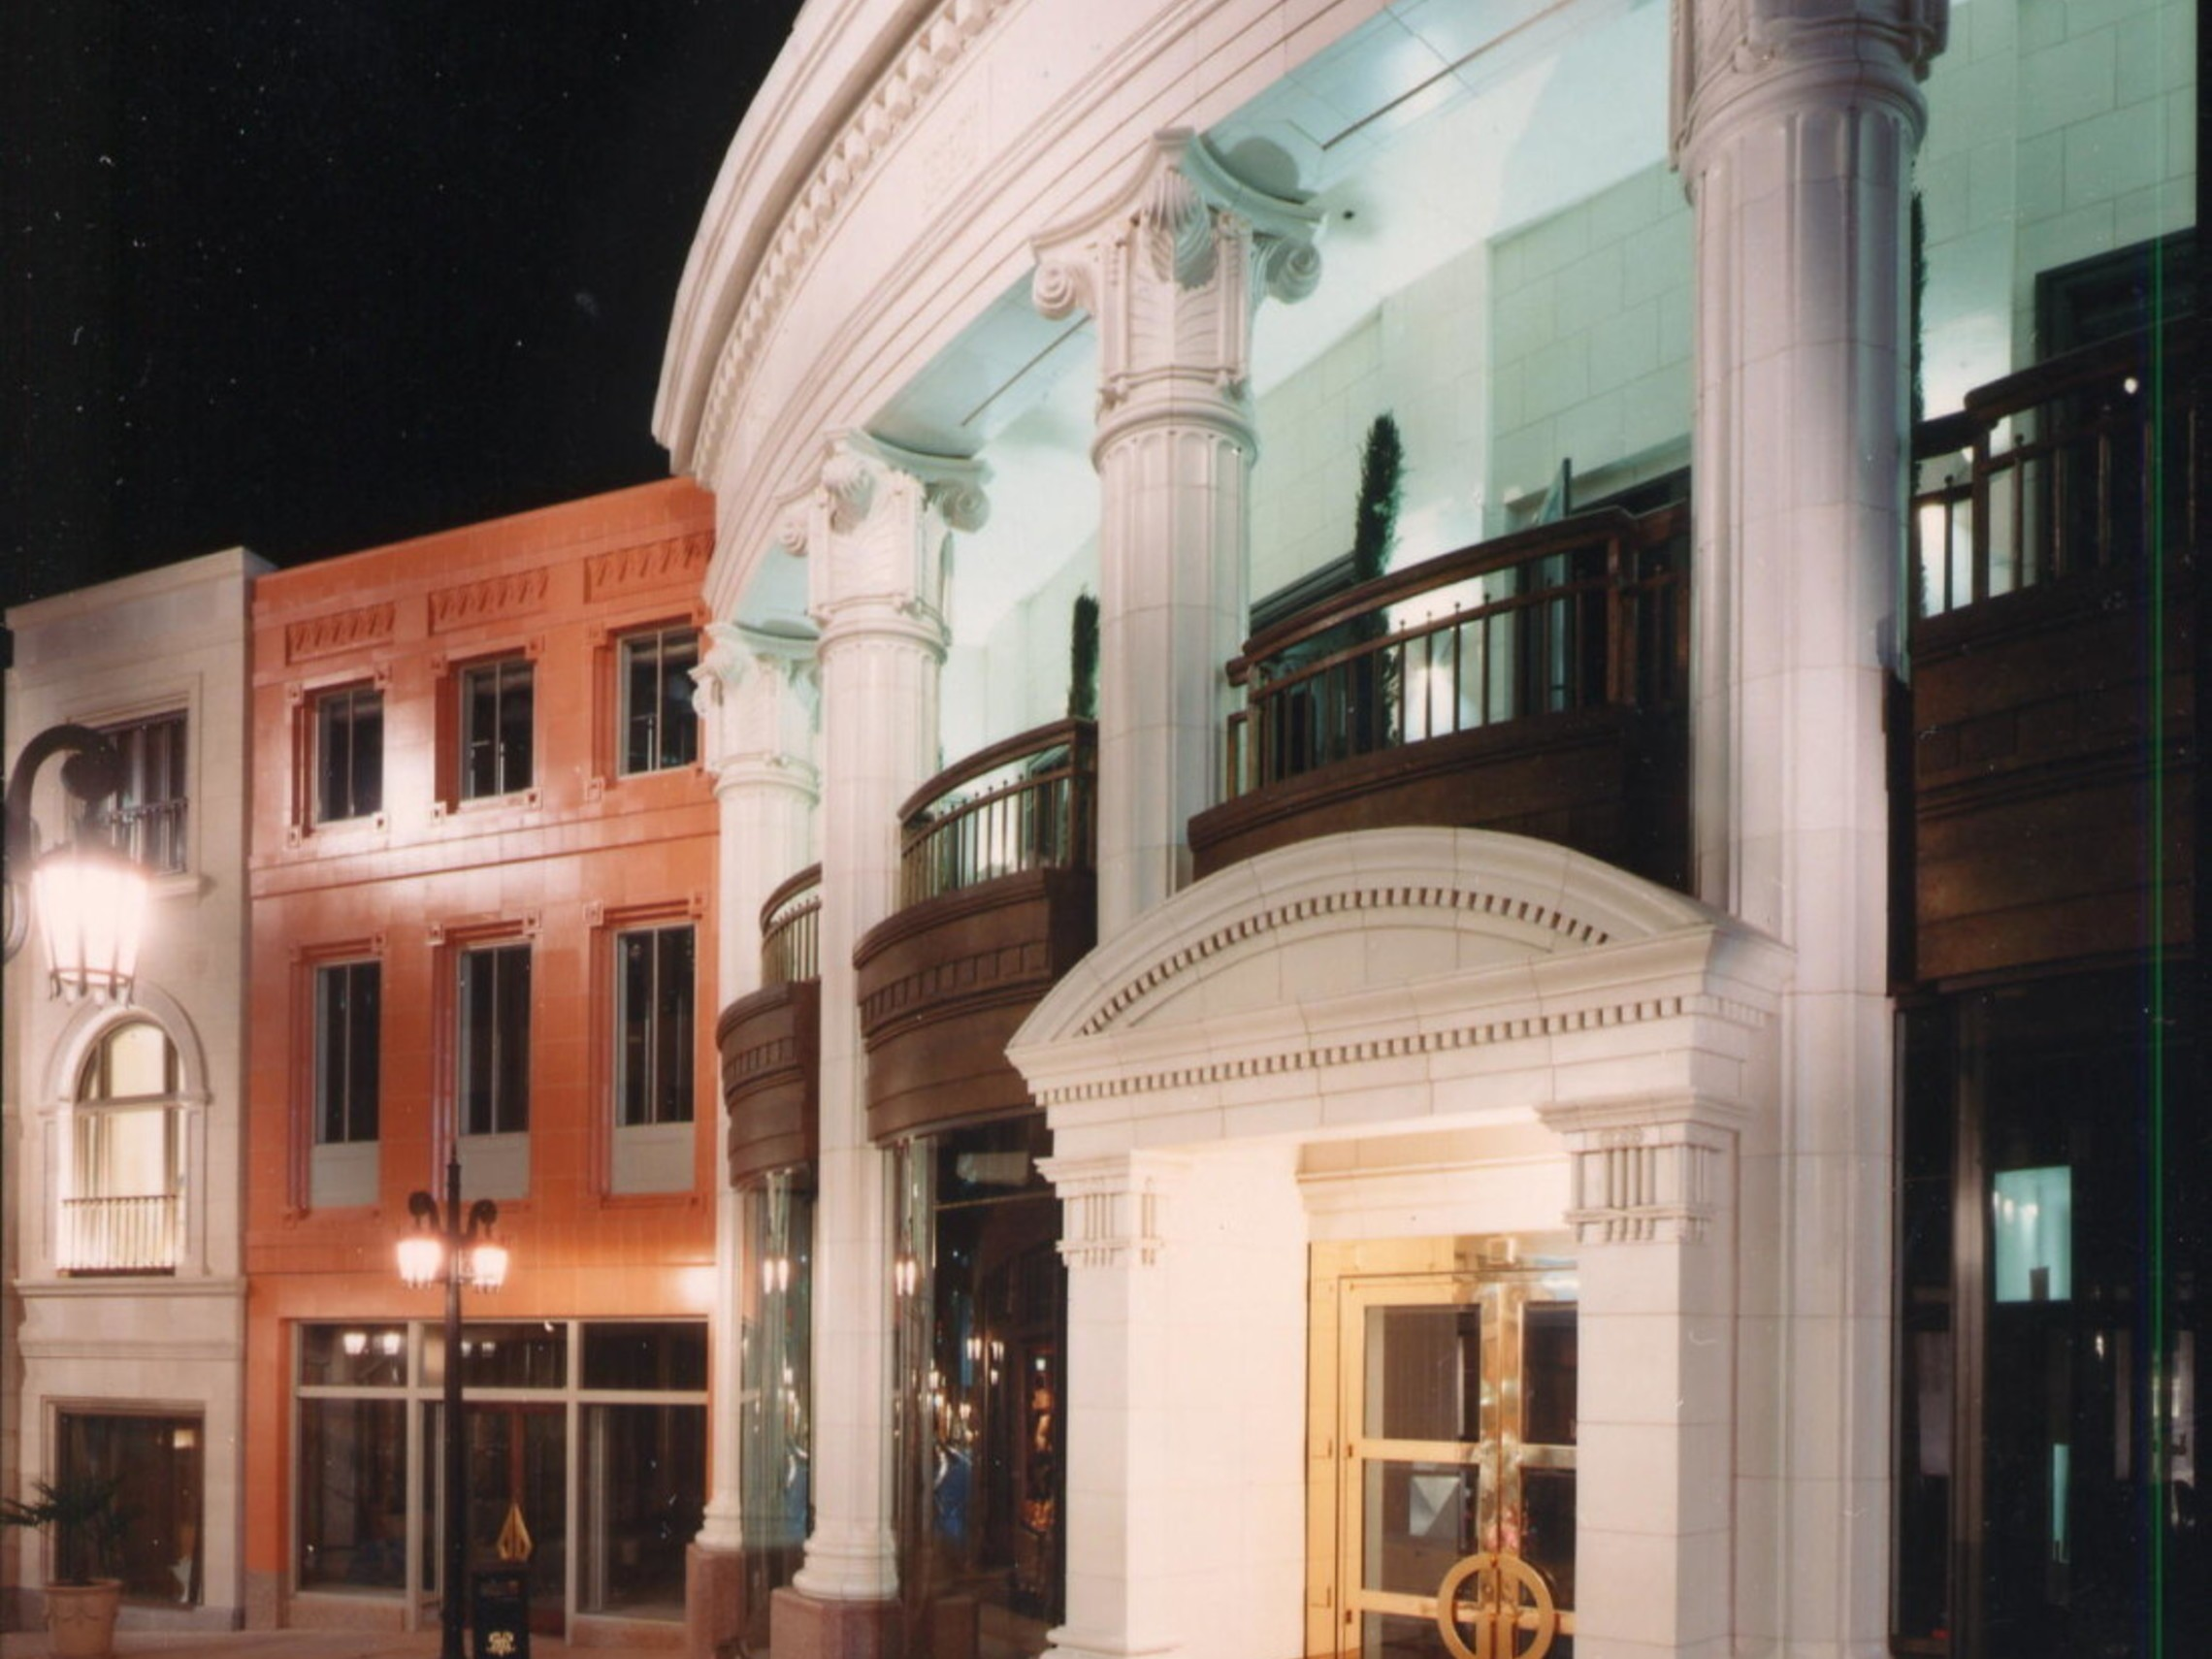 Two Rodeo Drive Storefront 1100x1378